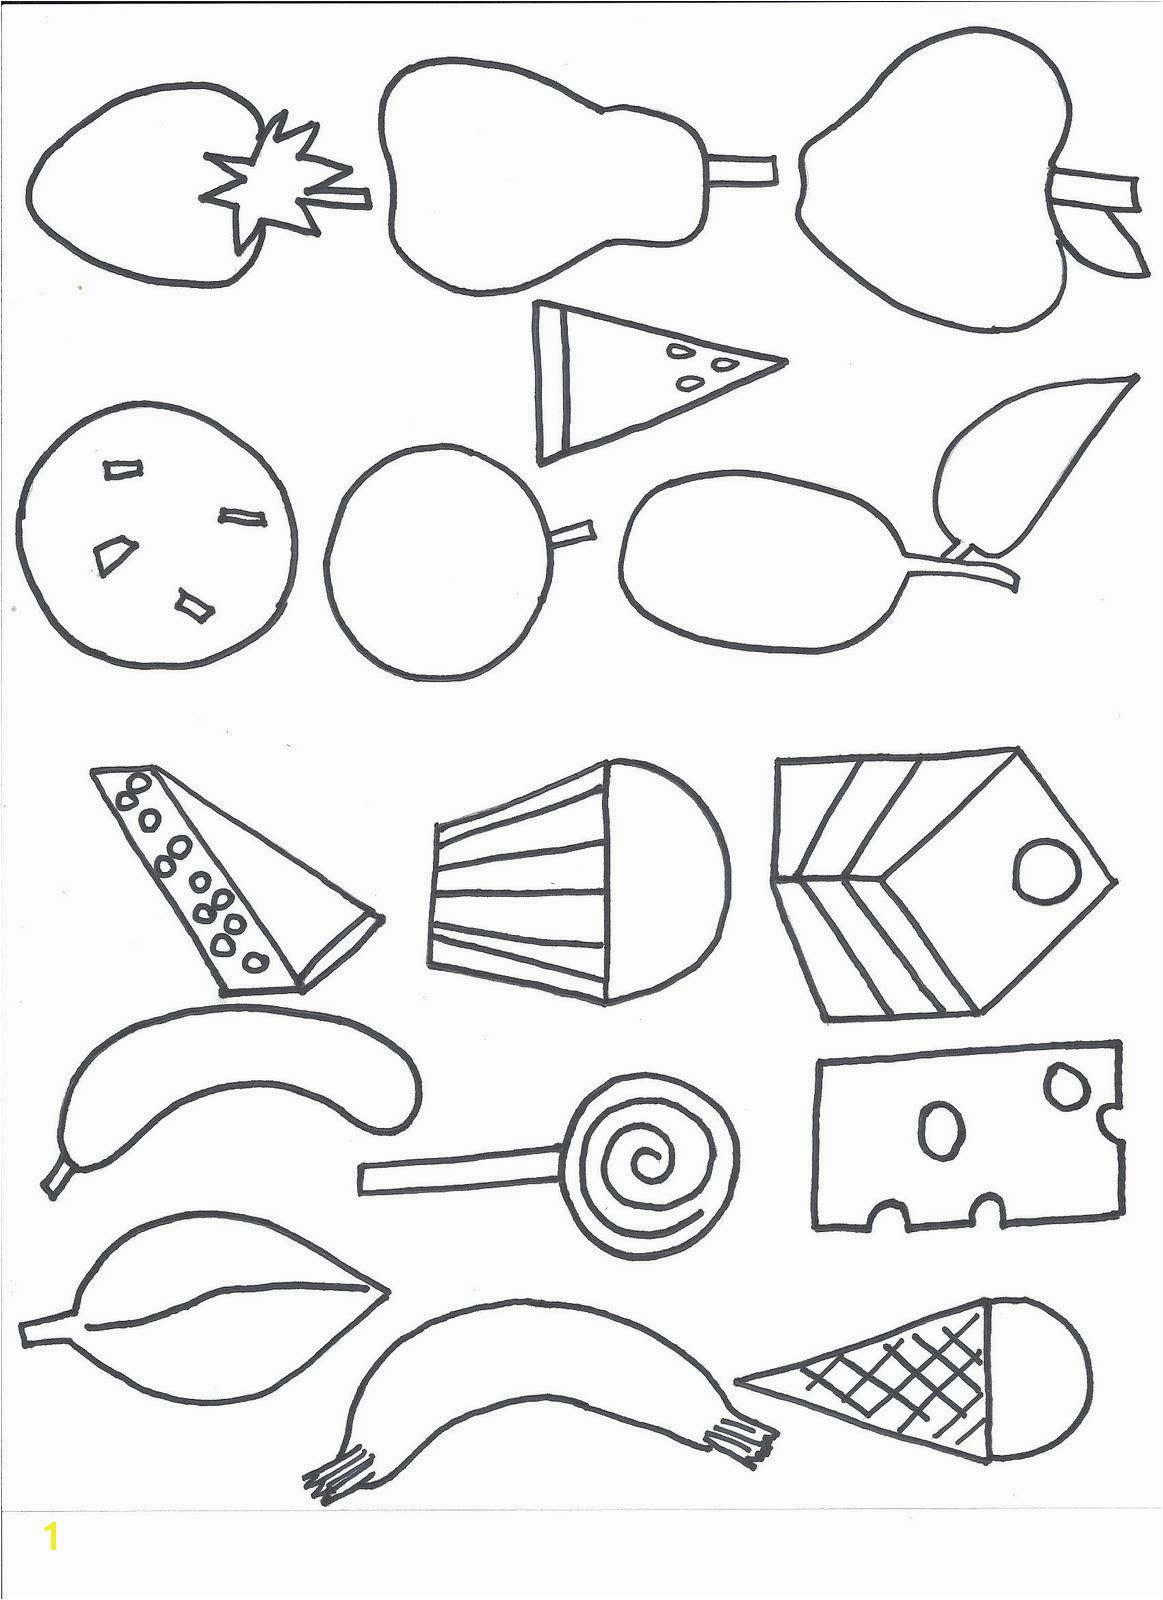 Hungry Caterpillar Coloring Pages Very Hungry Caterpillar Coloring Pages Elegant Hungry Caterpillar